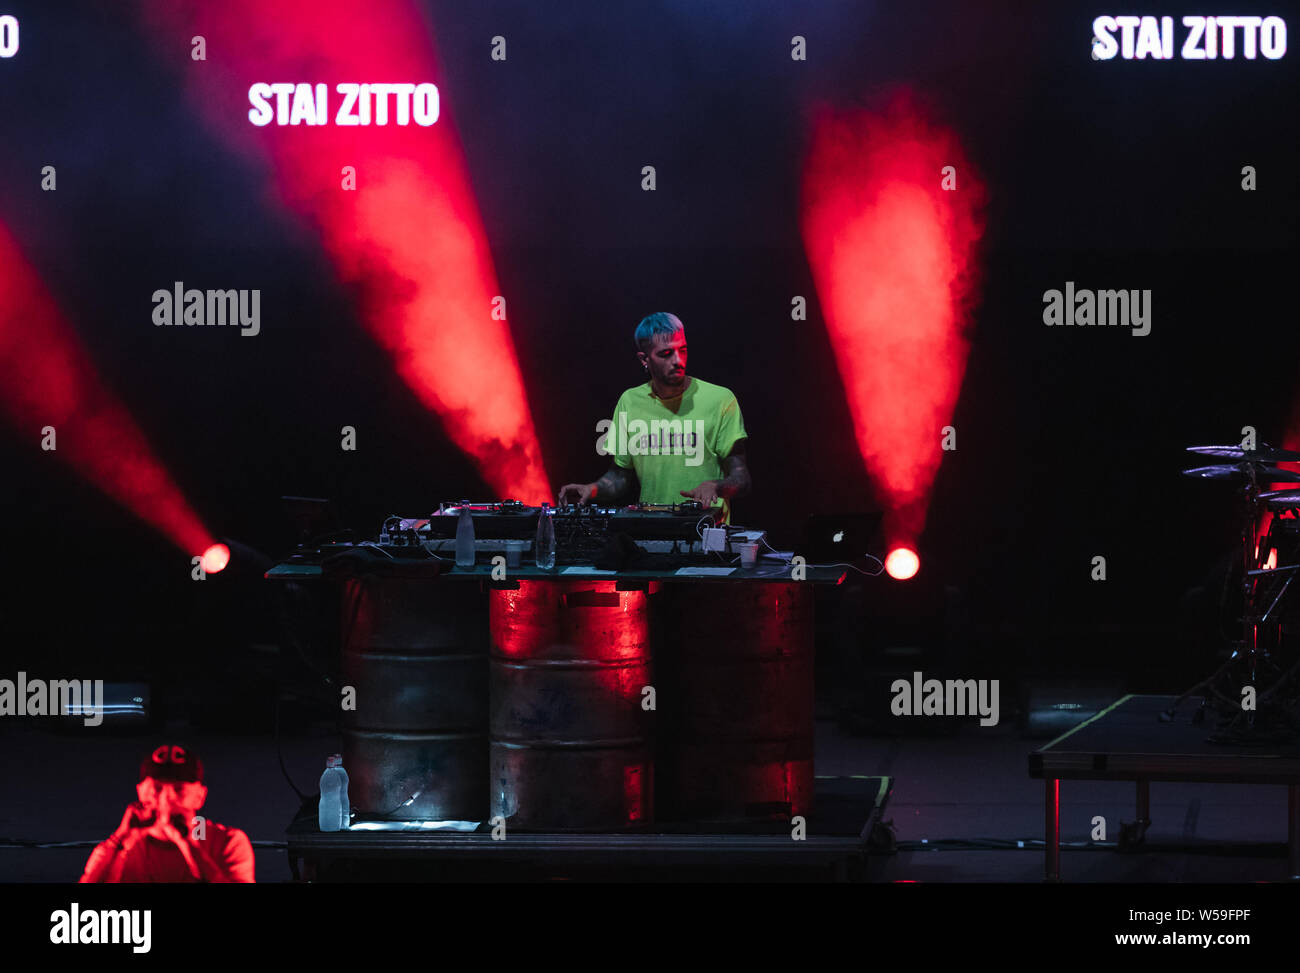 """Naples, Italy. 26th July, 2019. The italian DJ Slait seen at the concert of singer and songwriter Maurizio Pisciottu known as Salmo during the """"Playlist Summer Tour"""" at Noisy Fest in Naples. Credit: SOPA Images Limited/Alamy Live News Stock Photo"""